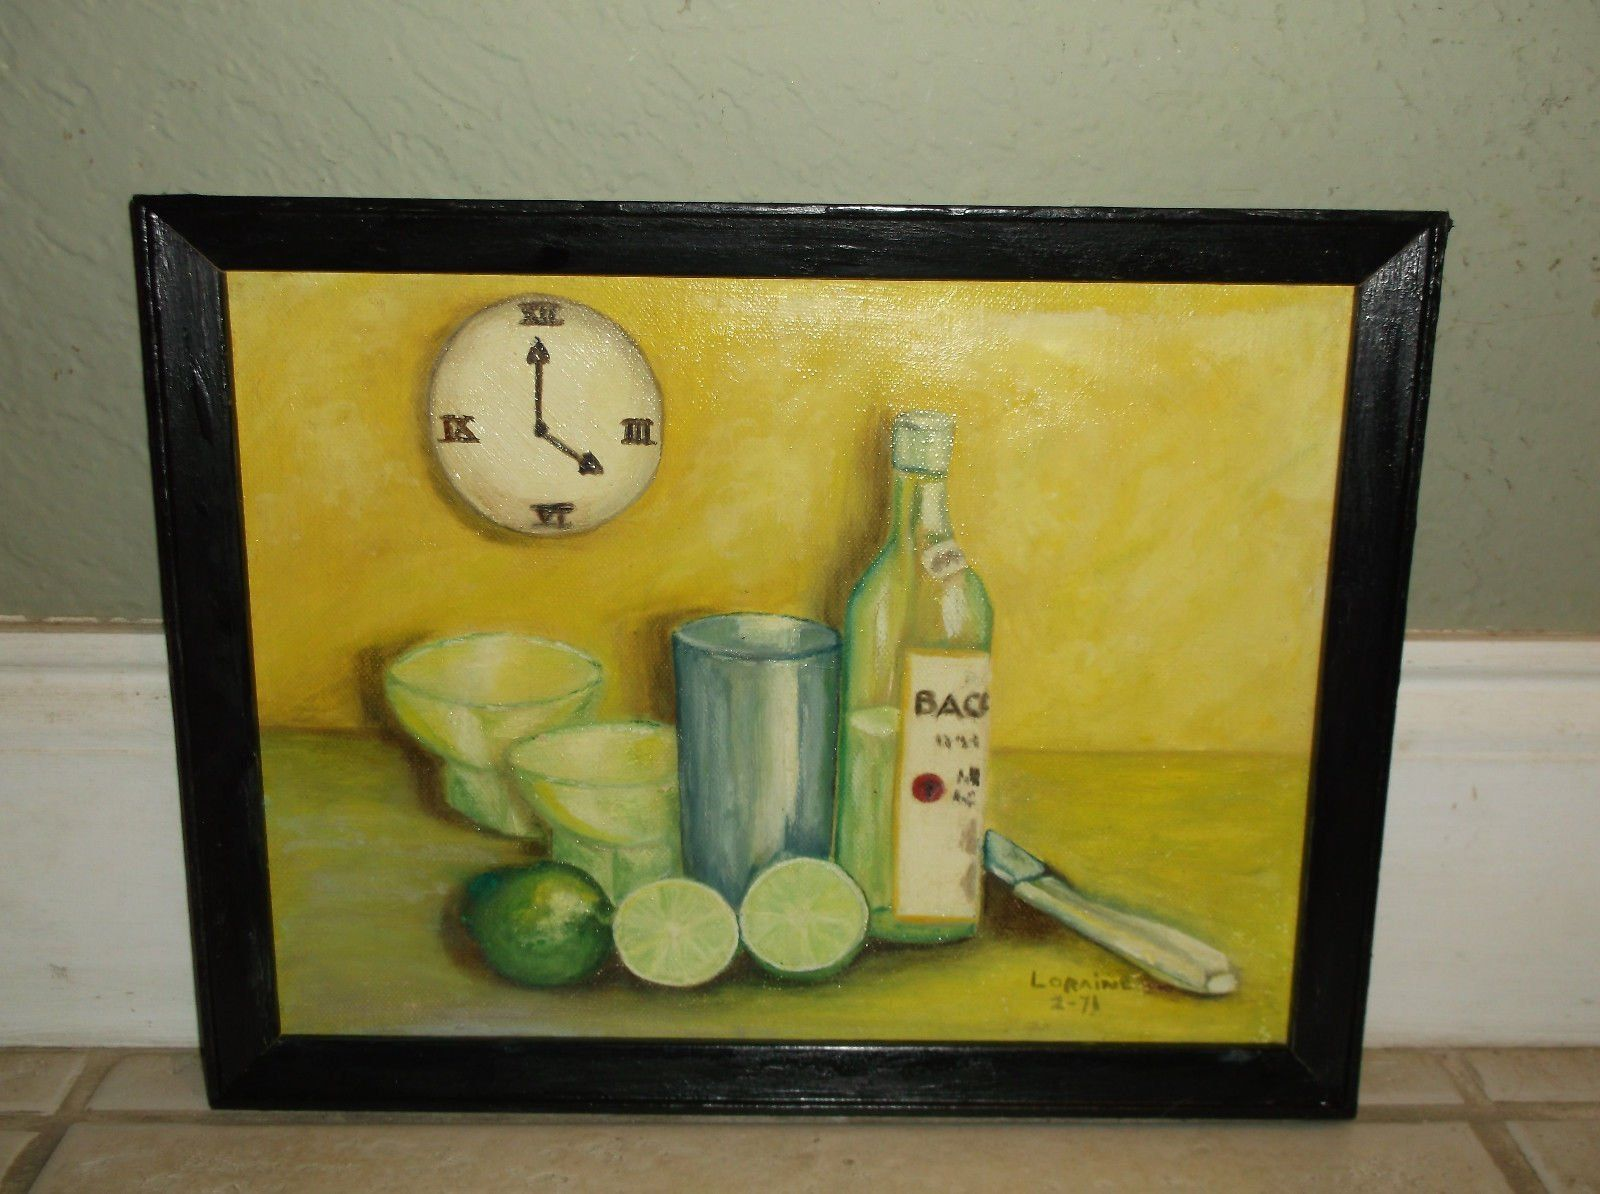 """VINTAGE LIME AND RUM STILL LIFE OIL ON BOARD SIGNED """"LORAINE B. MACINTRYE 2-71"""" https://t.co/HAq5P5bF6Y #Homedecor https://t.co/m37JKZwHv9"""